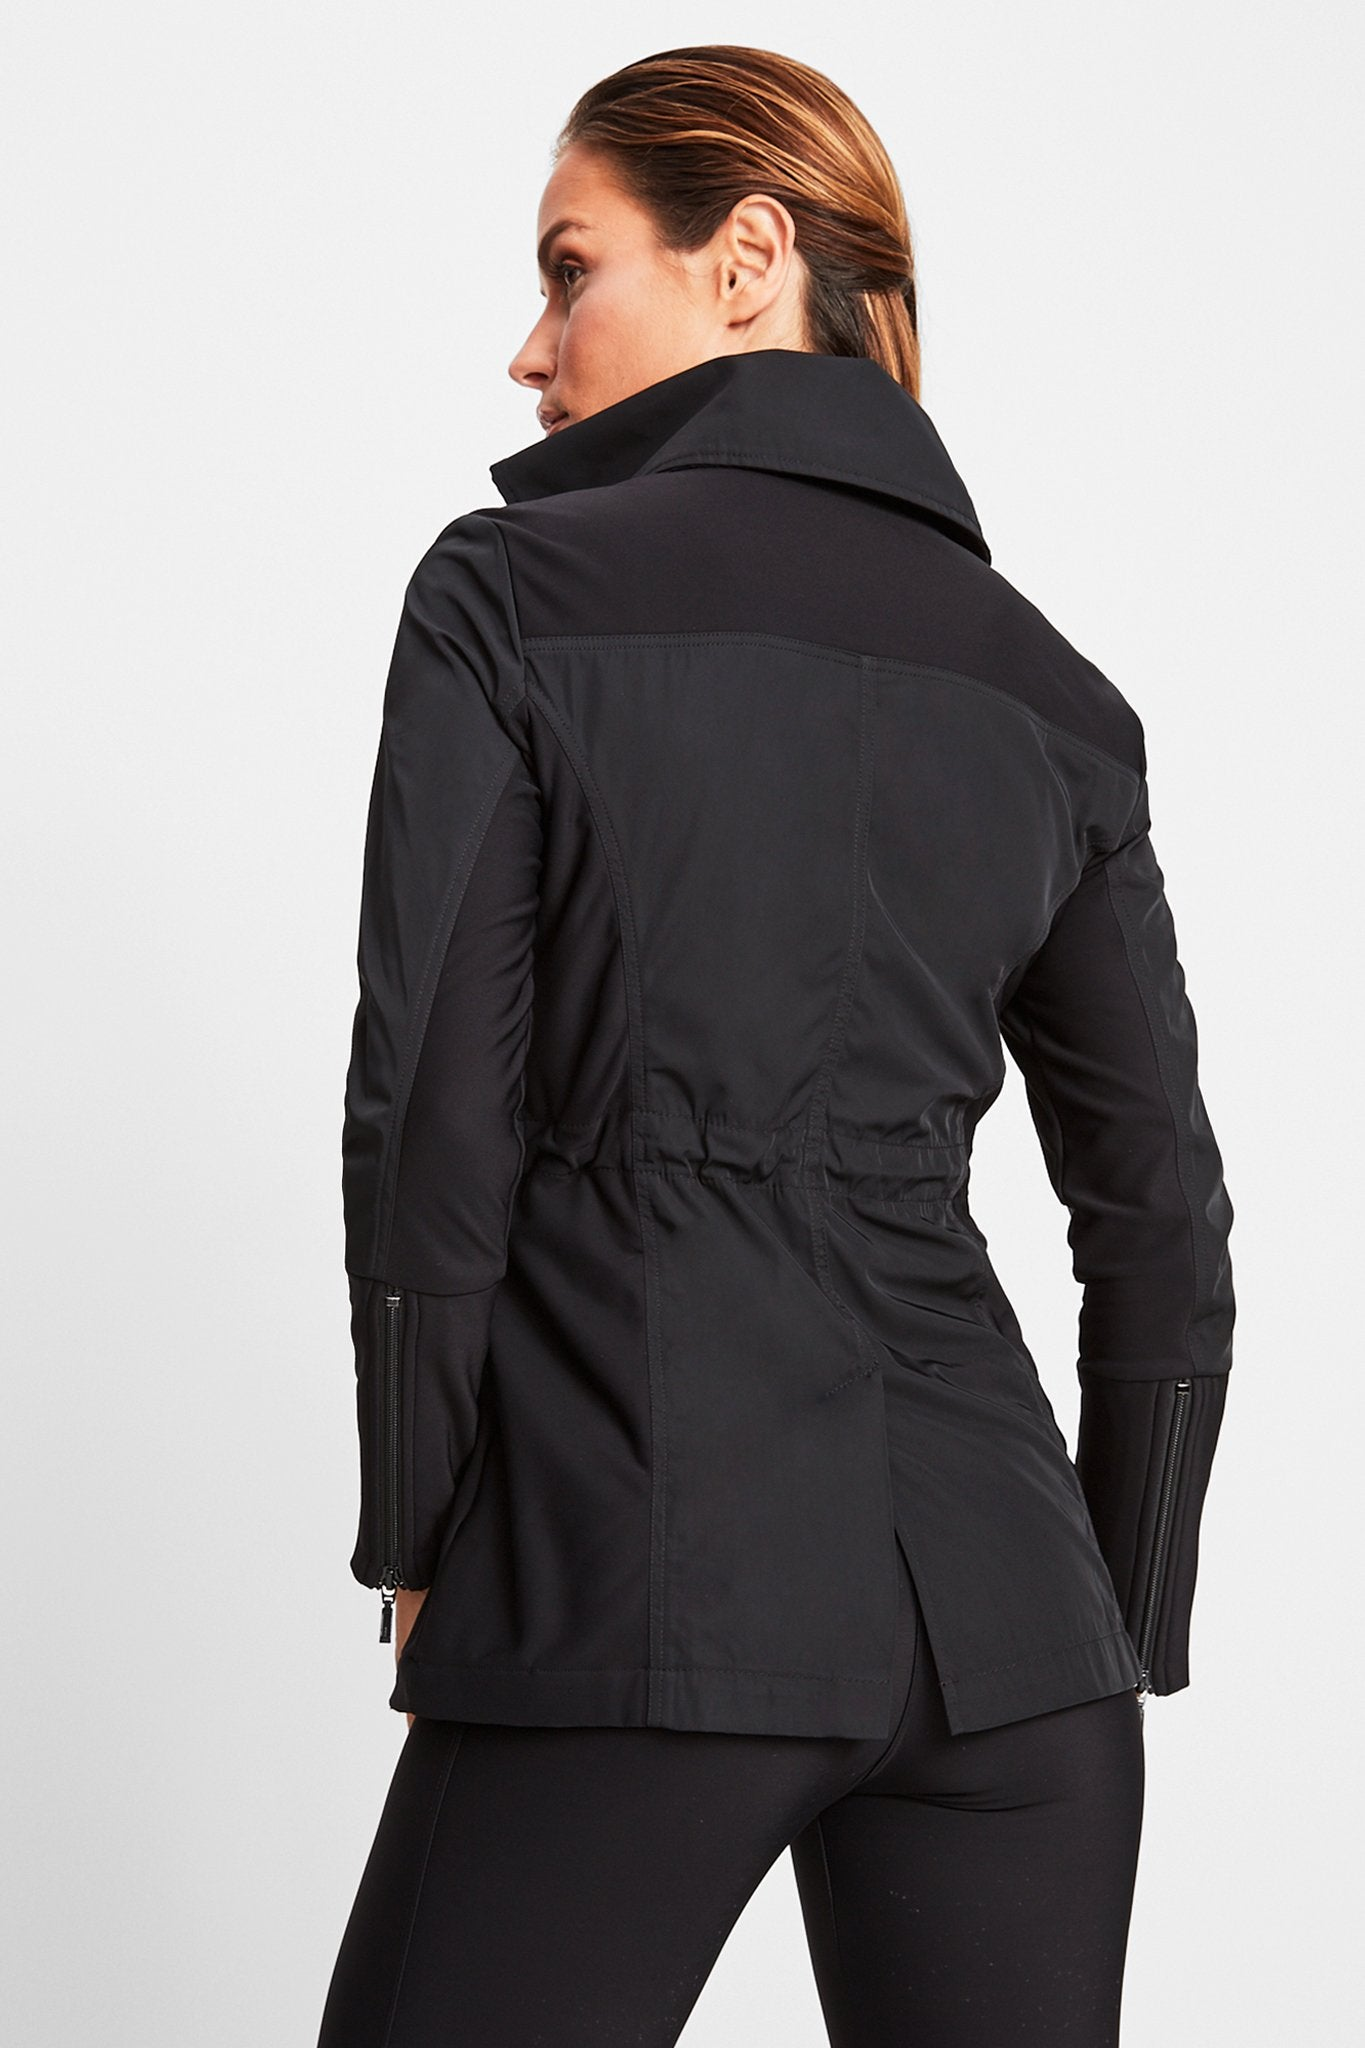 ANATOMIE CITY SLICK JACKET